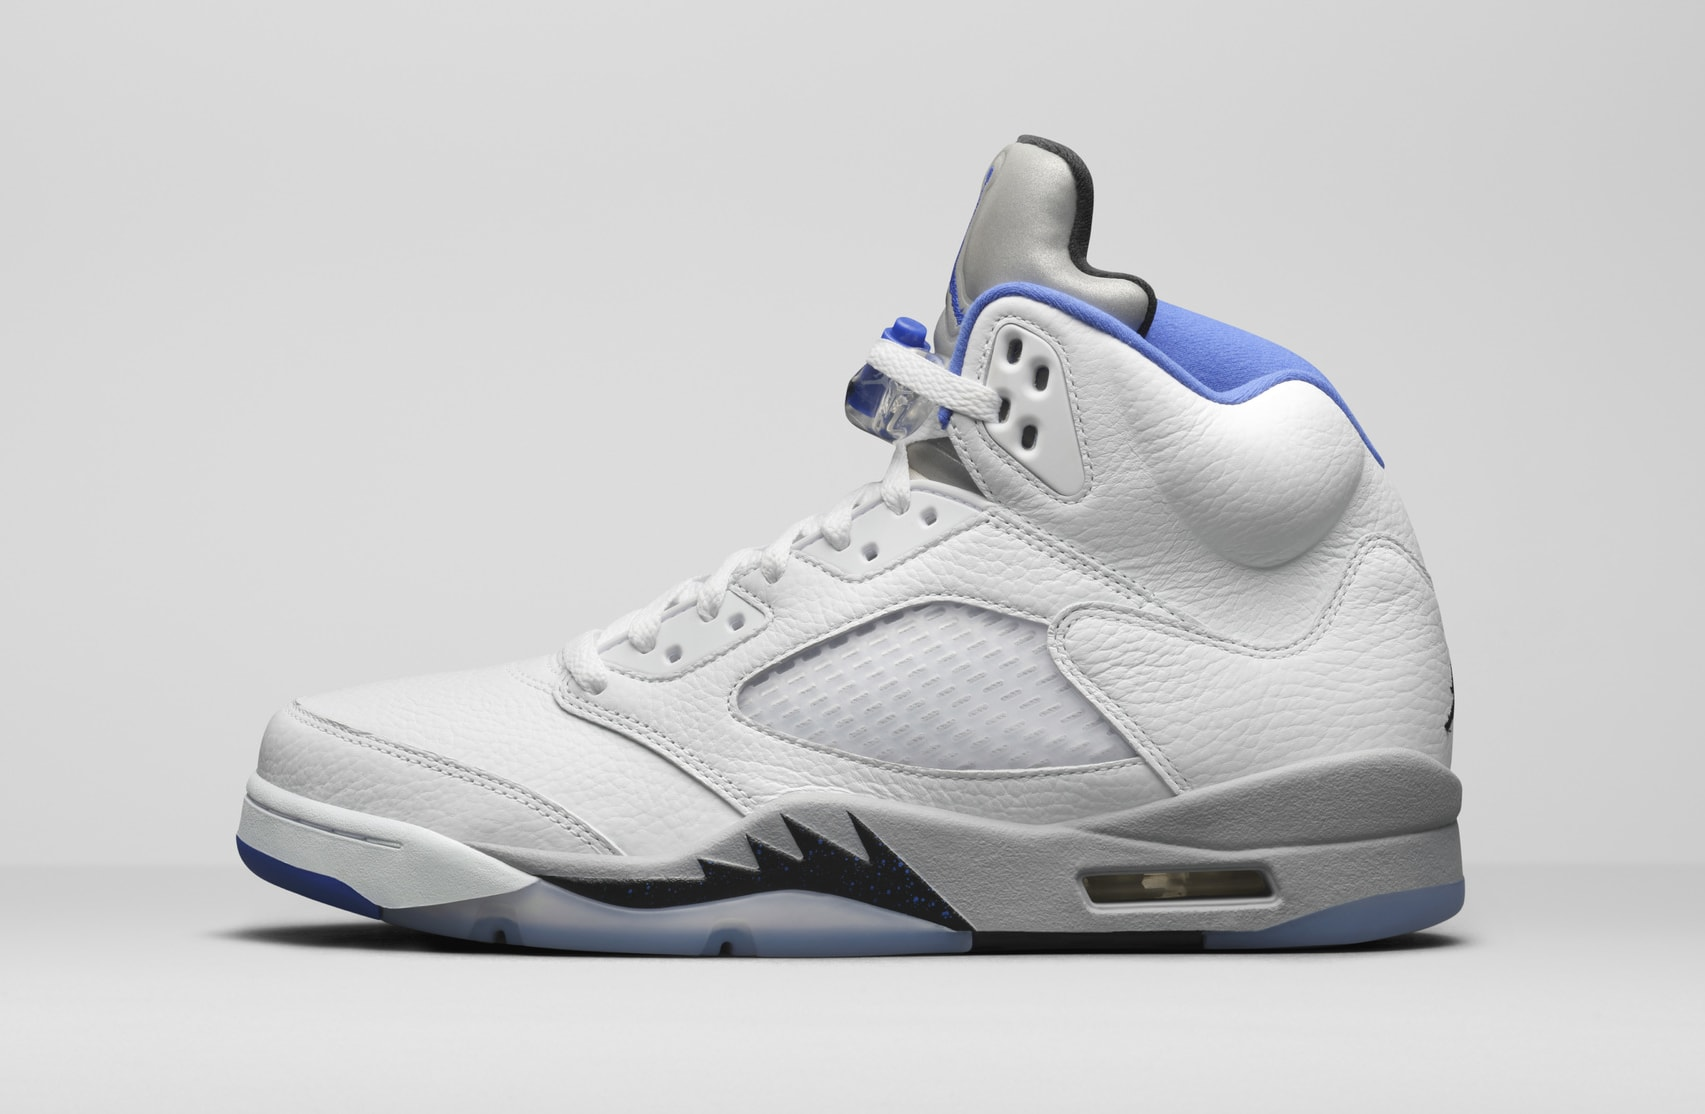 Air Jordan 5 Retro 'Hyper Royal' DD0587-140 Lateral